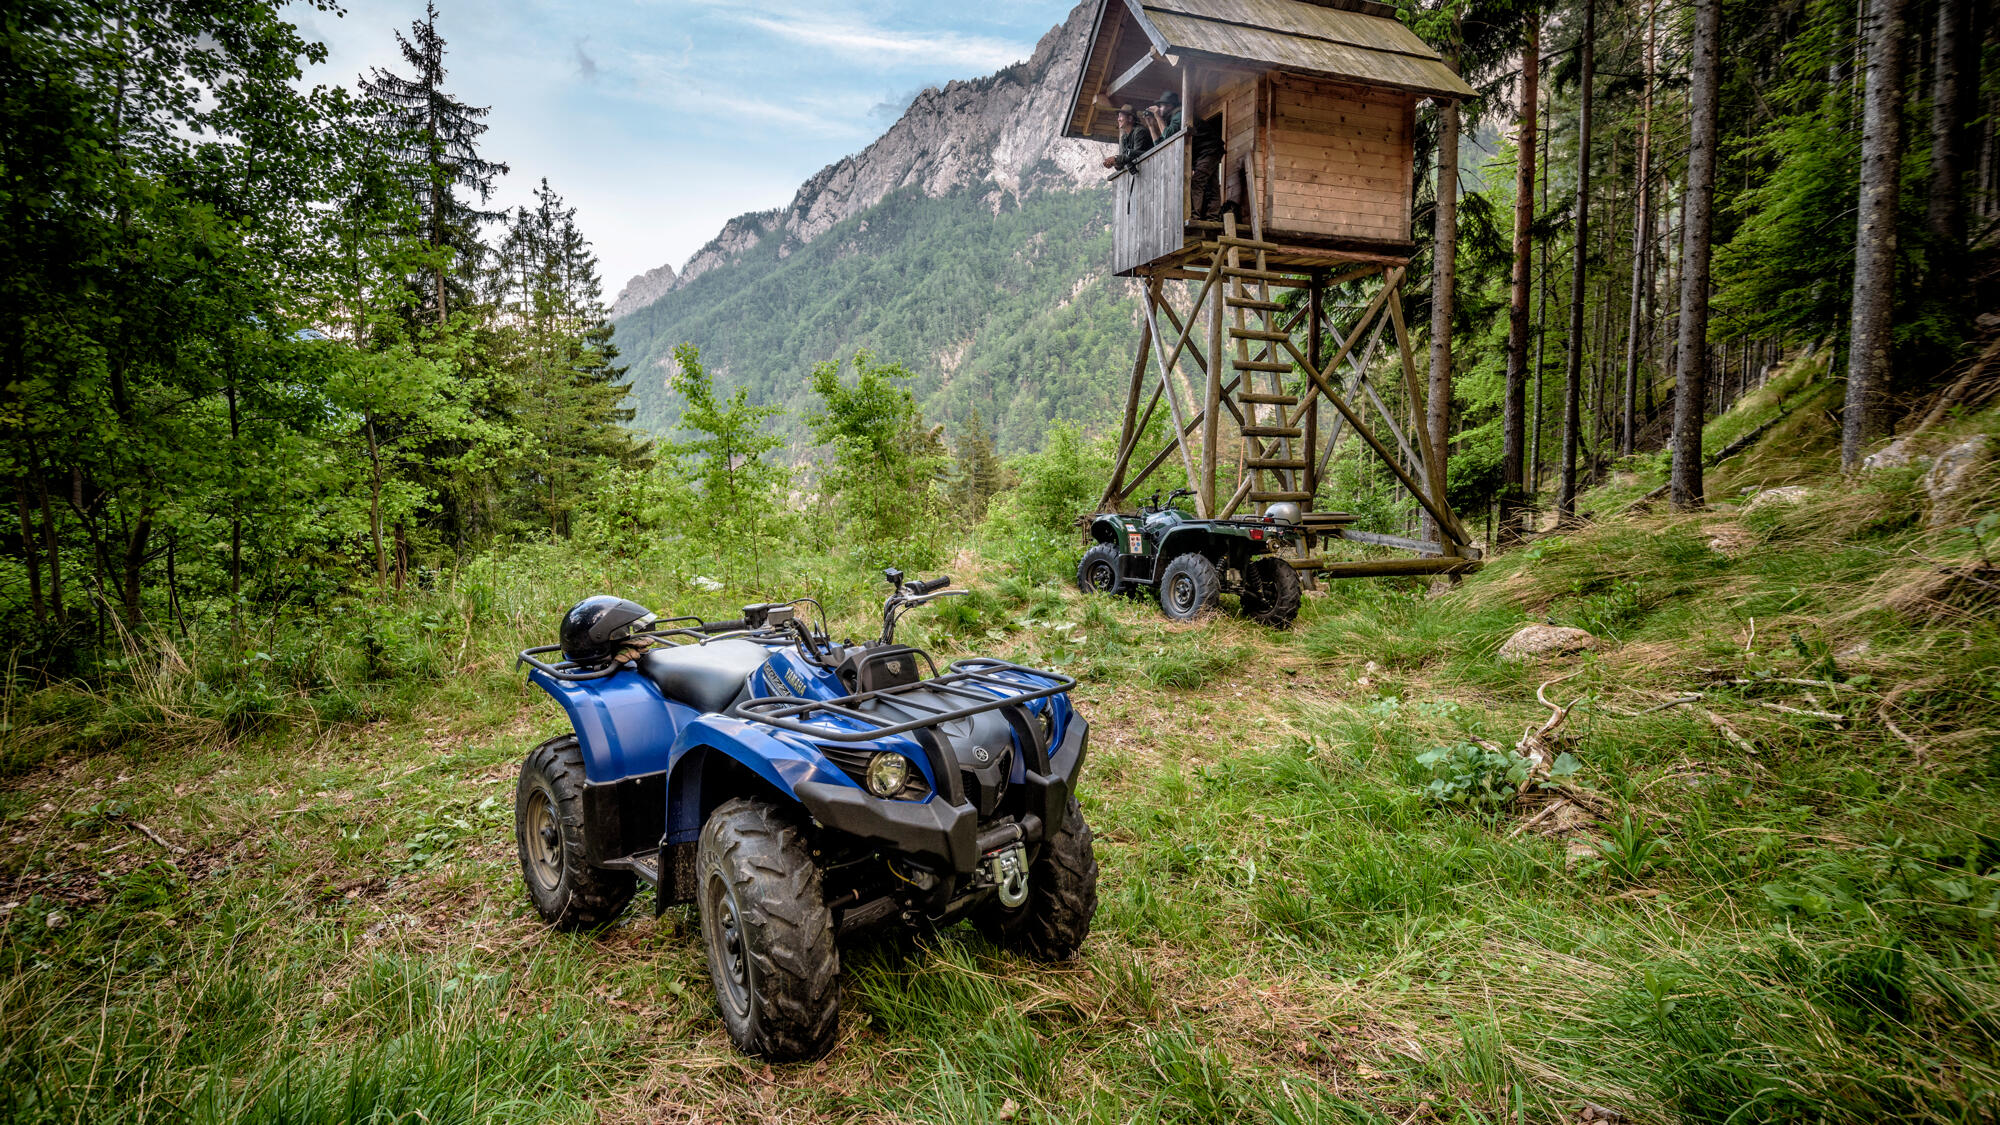 Yamaha 450 Atv >> Grizzly 450 EPS - atv - Yamaha Motor